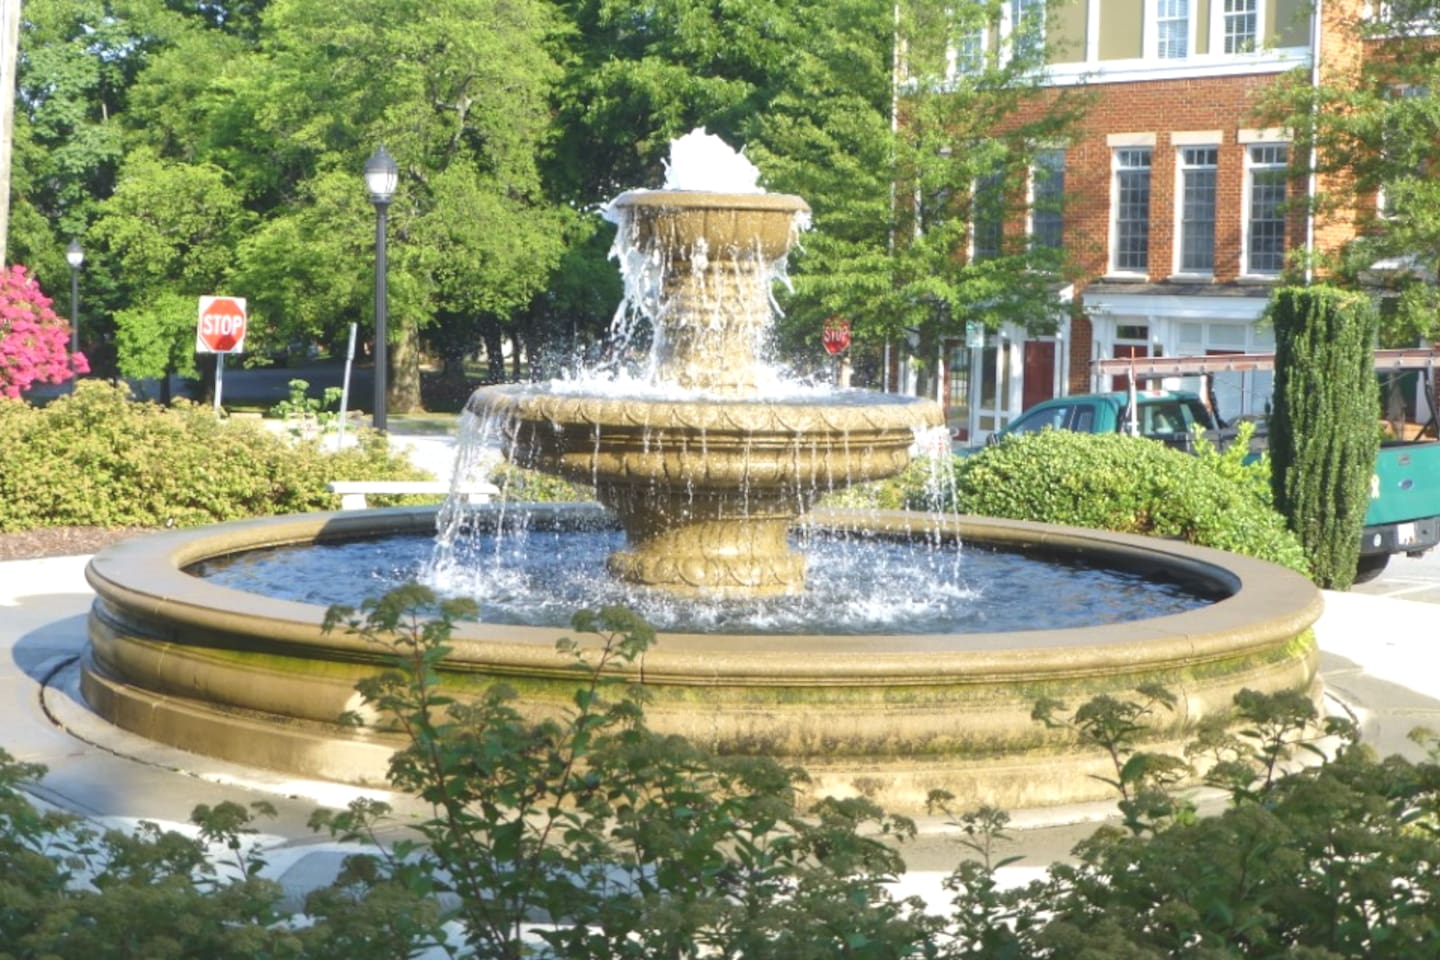 Welcome to the Southside Neighborhood in Downtown GSO! This is the fountain in Southside Square park, which is just around the corner from The Studio